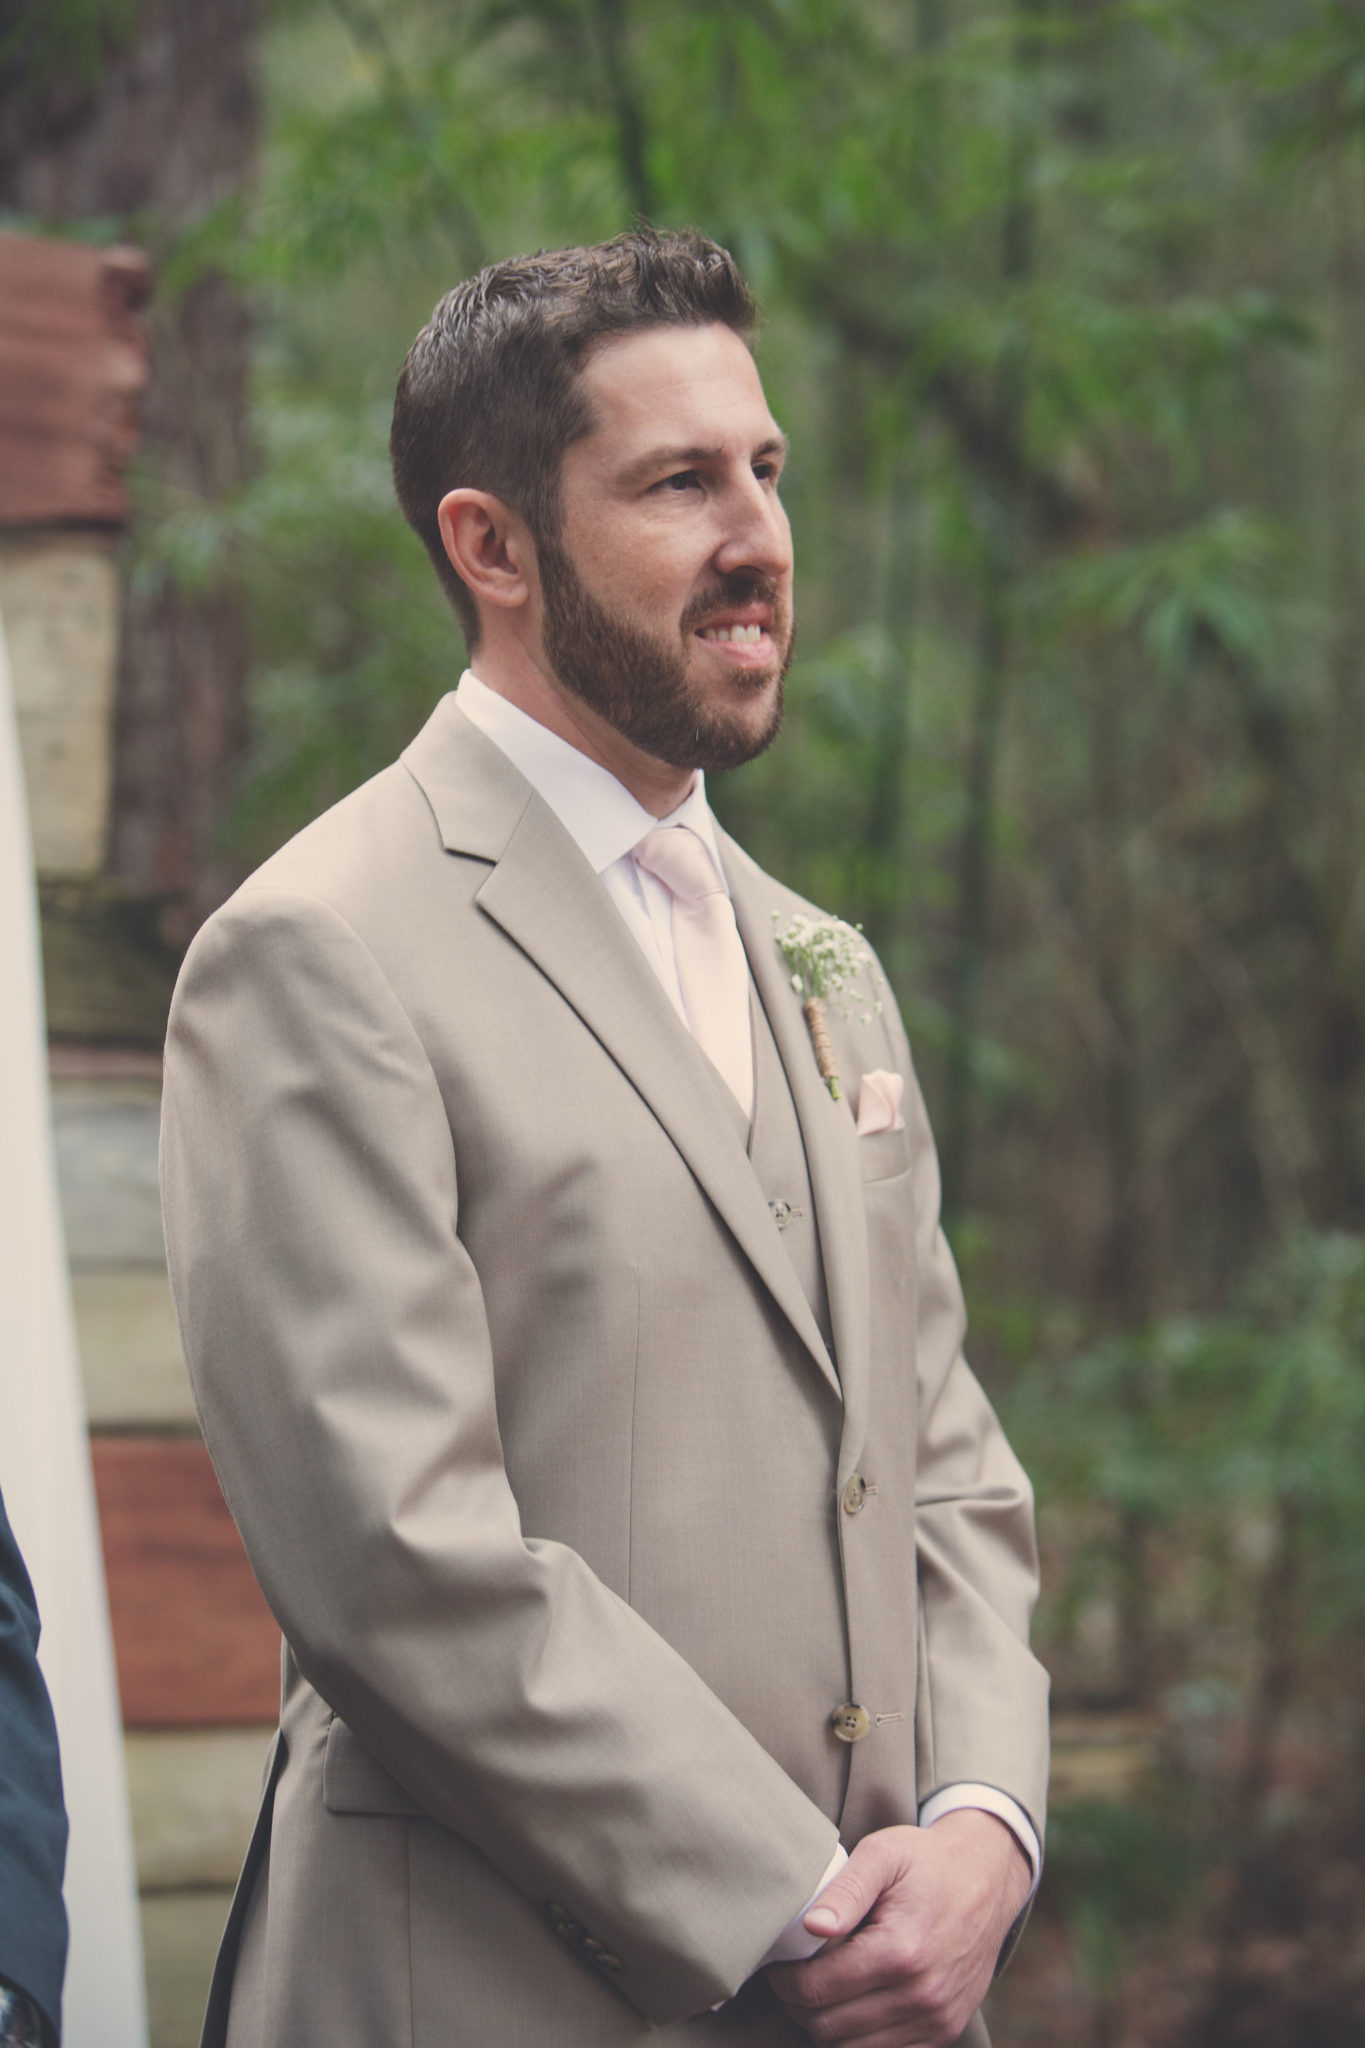 The groom waiting for his bride to walk down the aisle.